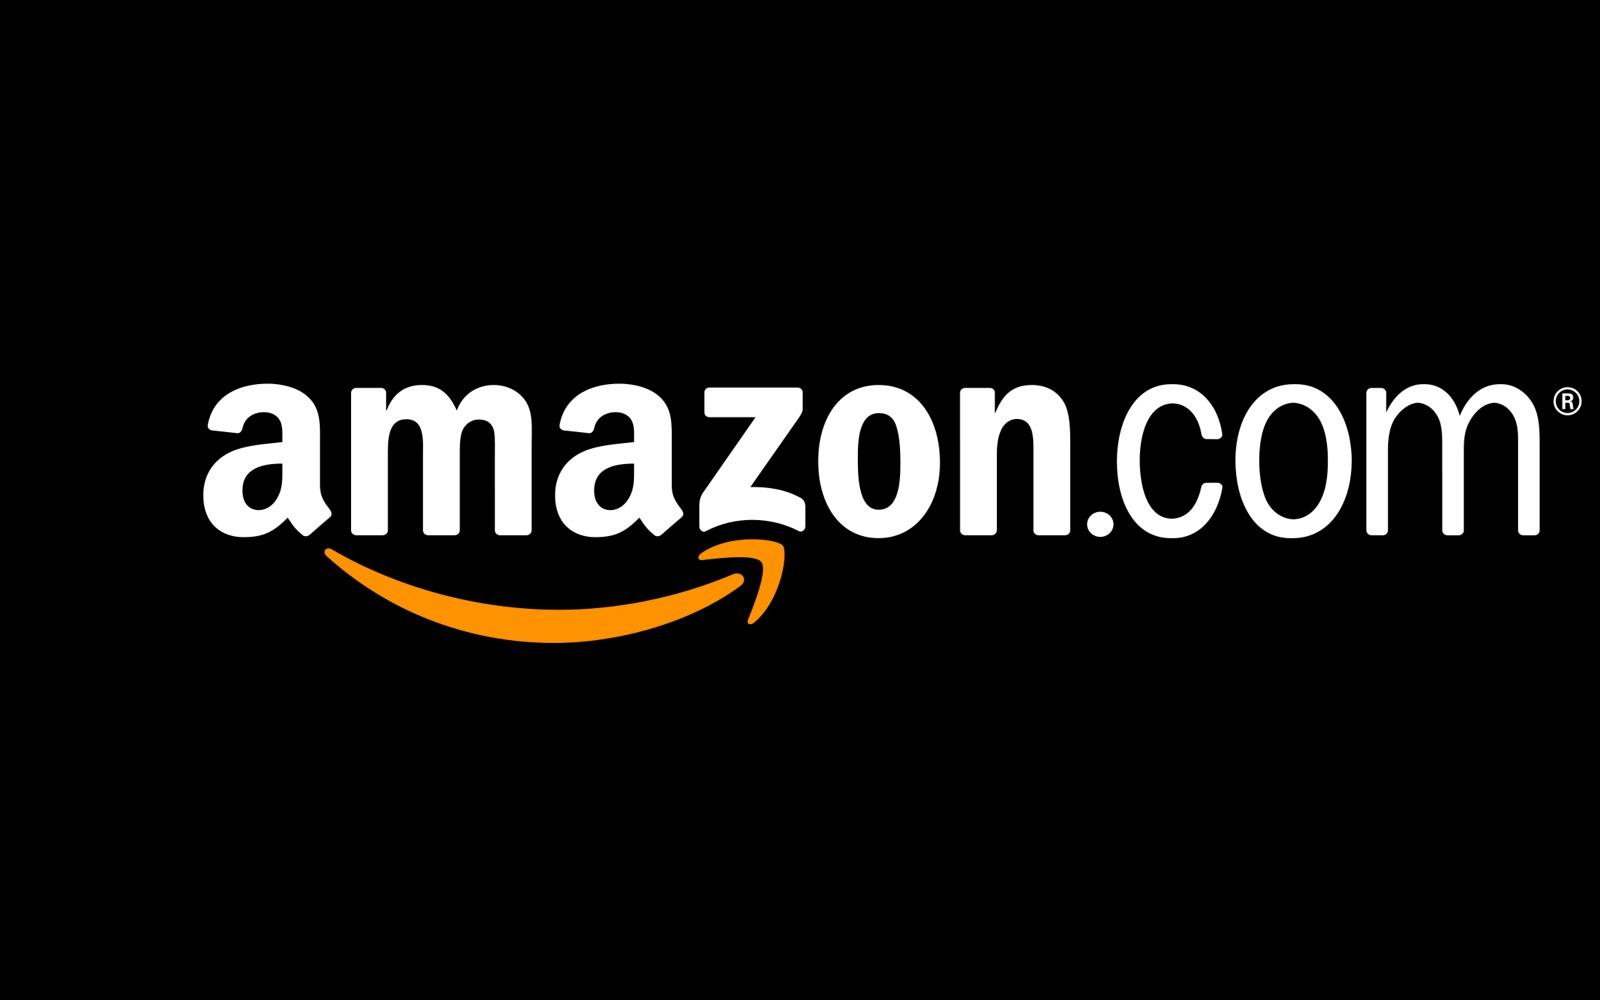 Amazon Is Google's Biggest Search Threat - Will It Crush The Search Giant?